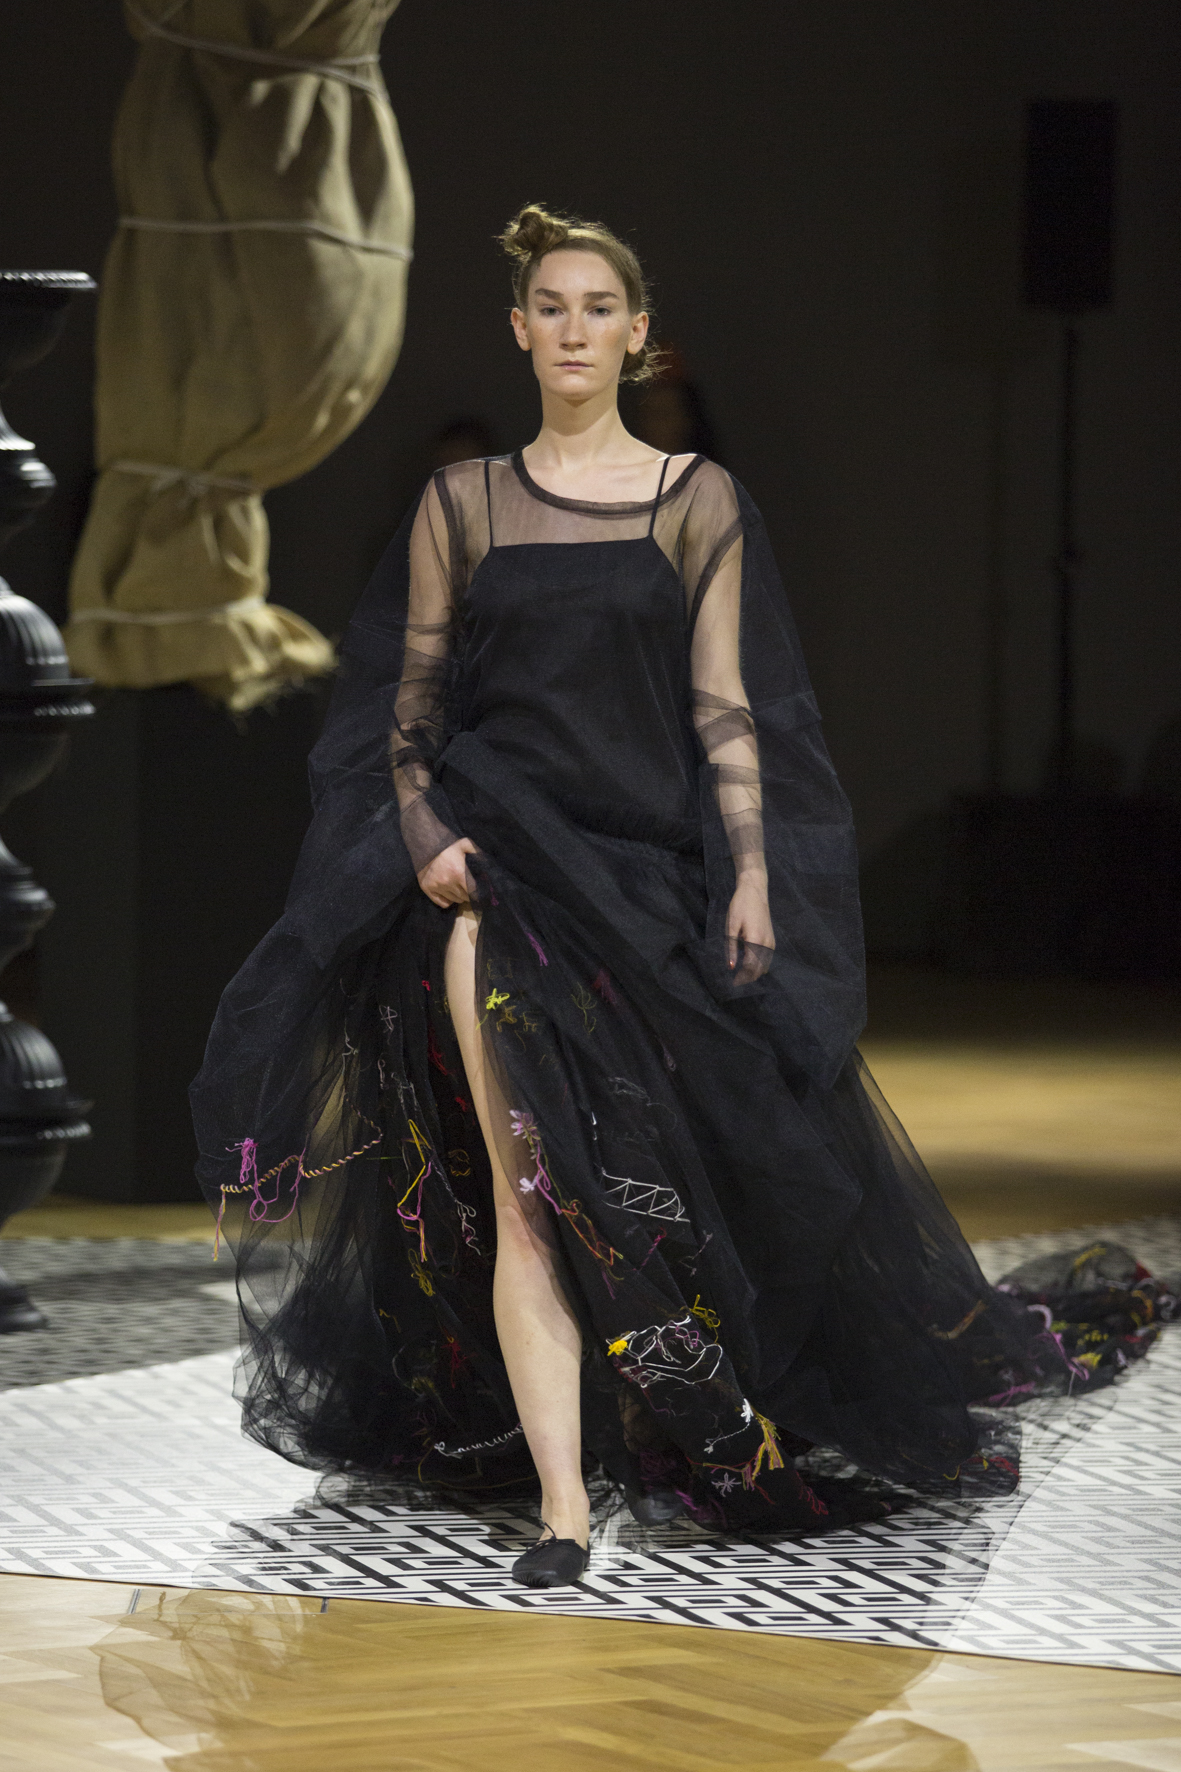 Molly Goddard's Fashion in Motion Show at the Victoria & Albert museum